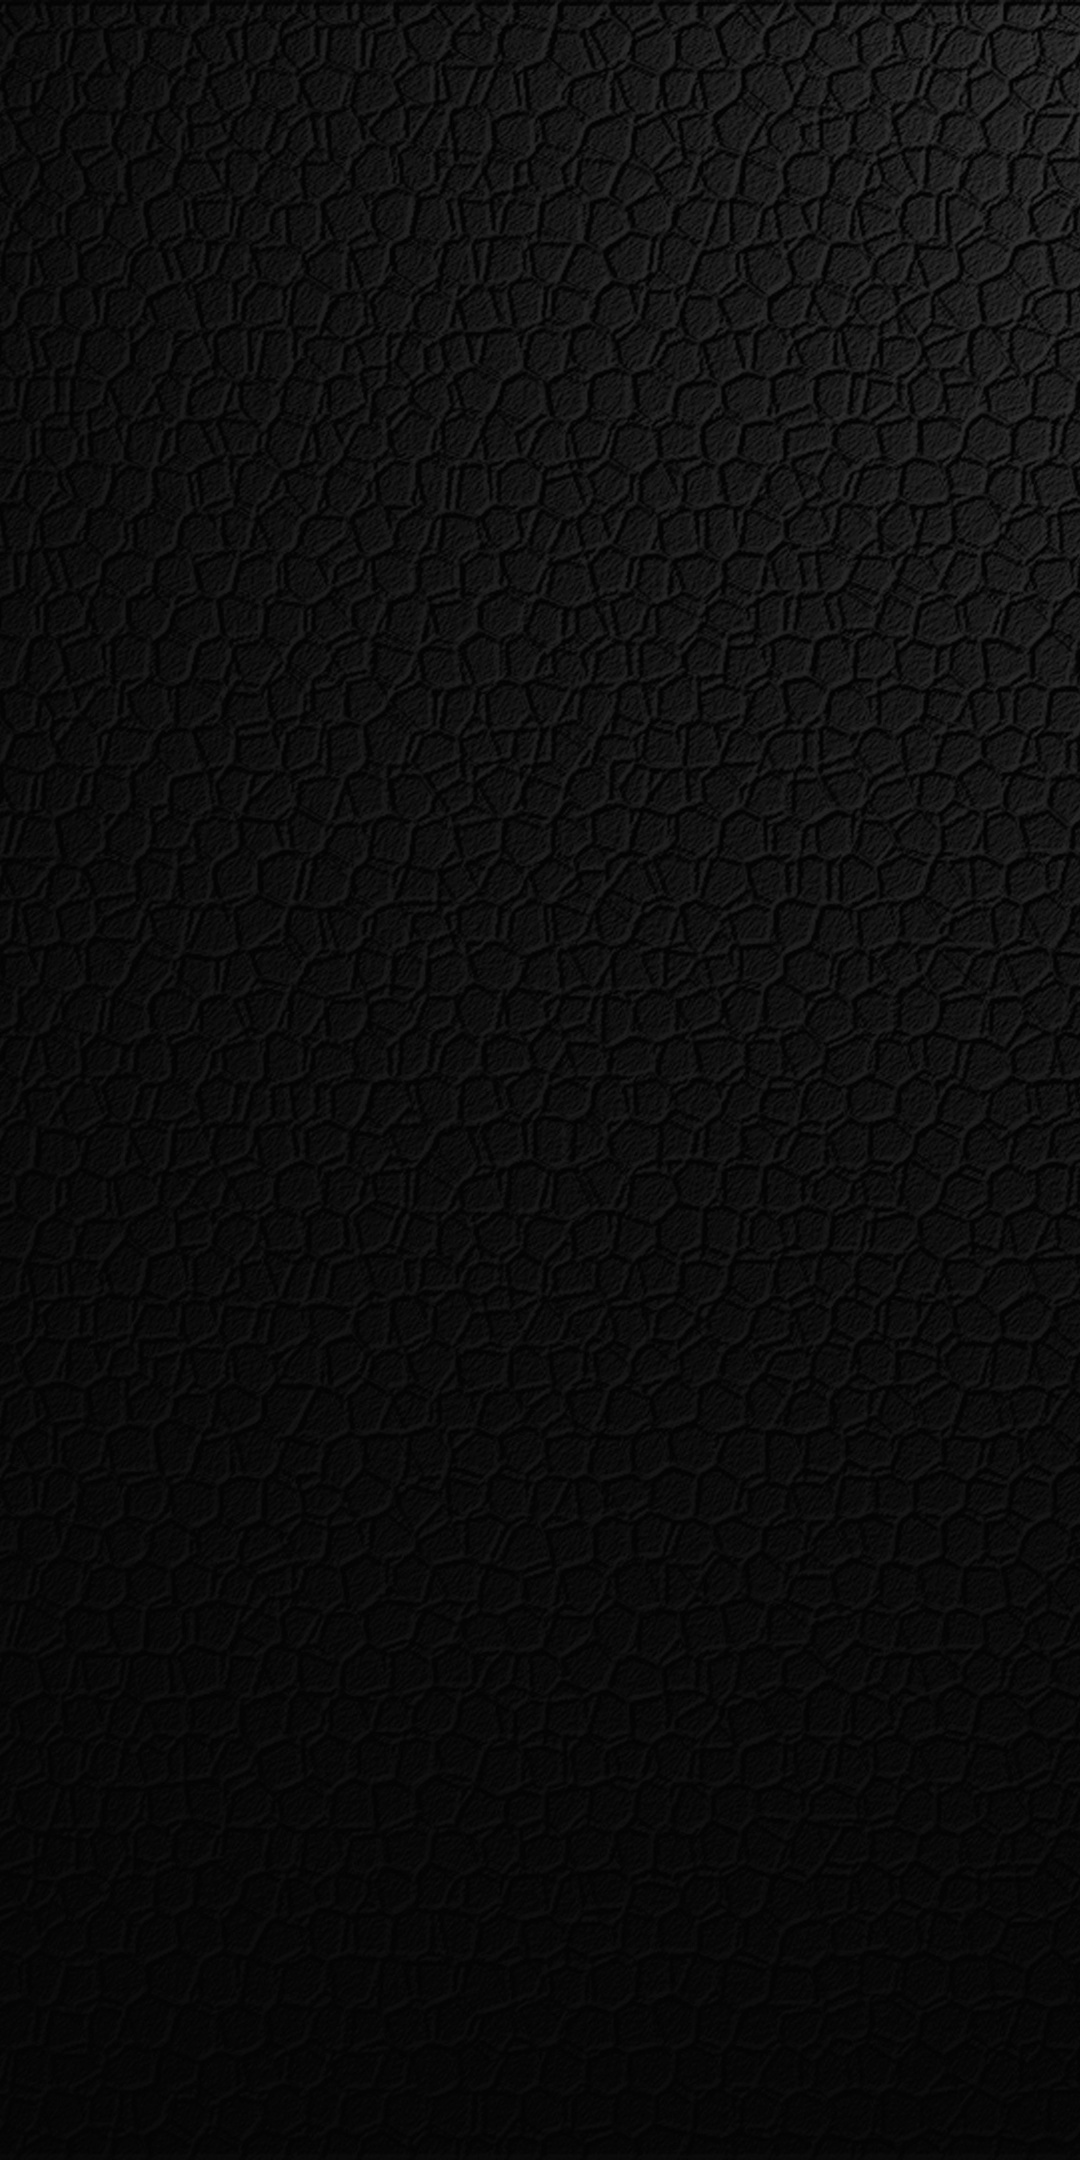 1080x2160 Black Skin Texture One Plus 5t Honor 7x Honor View 10 Lg Q6 Hd 4k Wallpapers Images Backgrounds Photos And Pictures